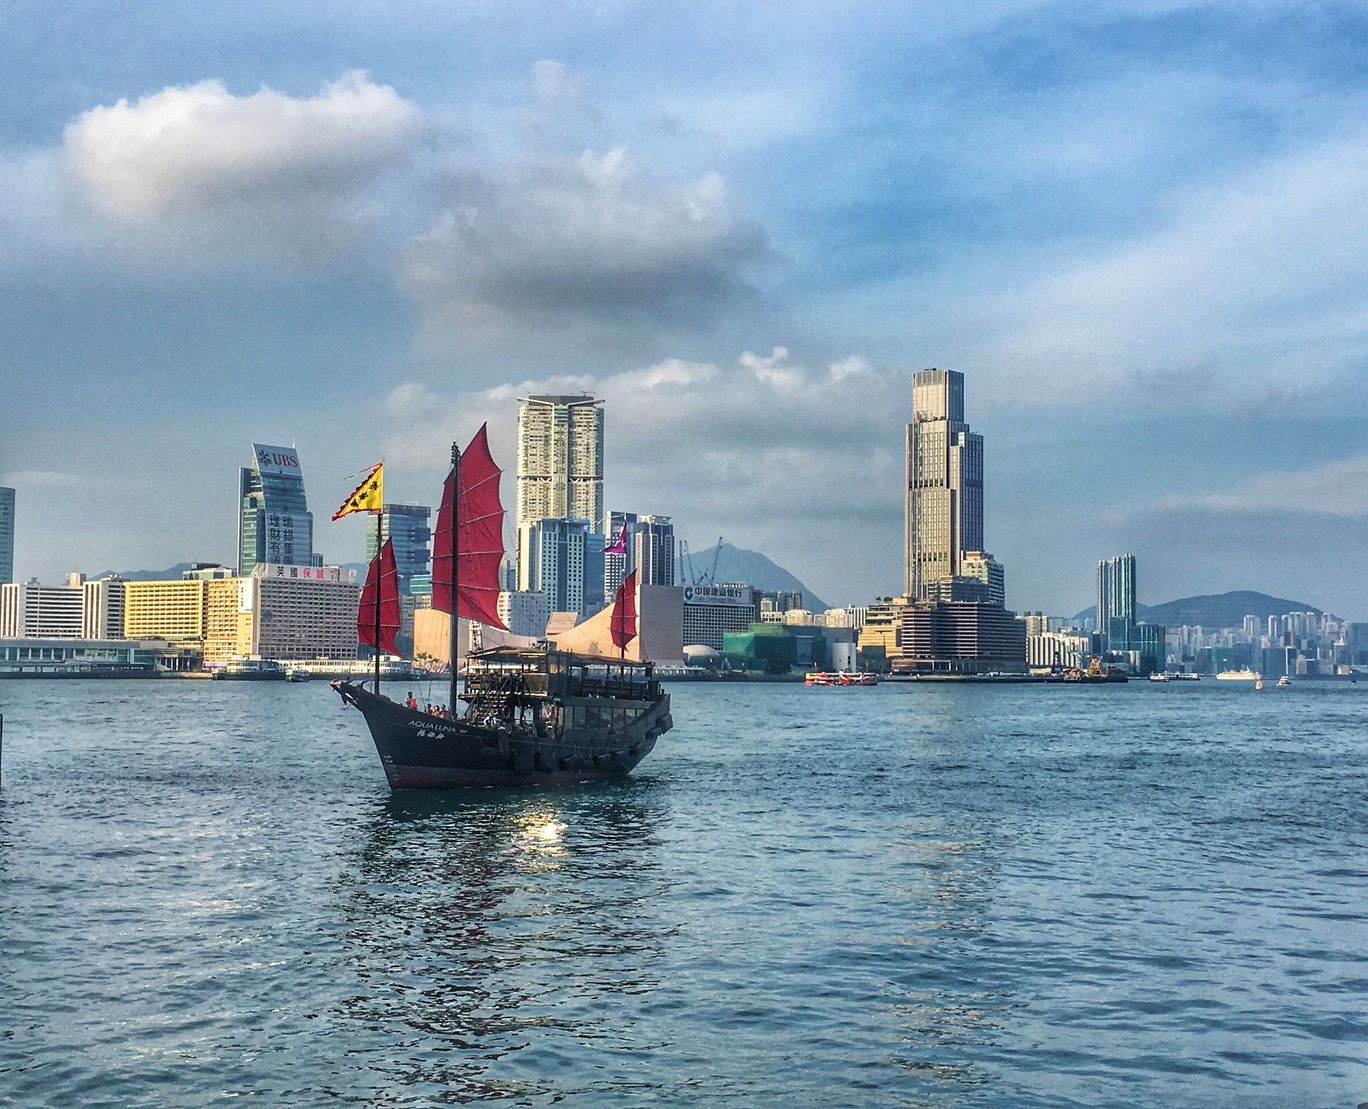 Photo of Victoria Harbour By Bikram Senapati